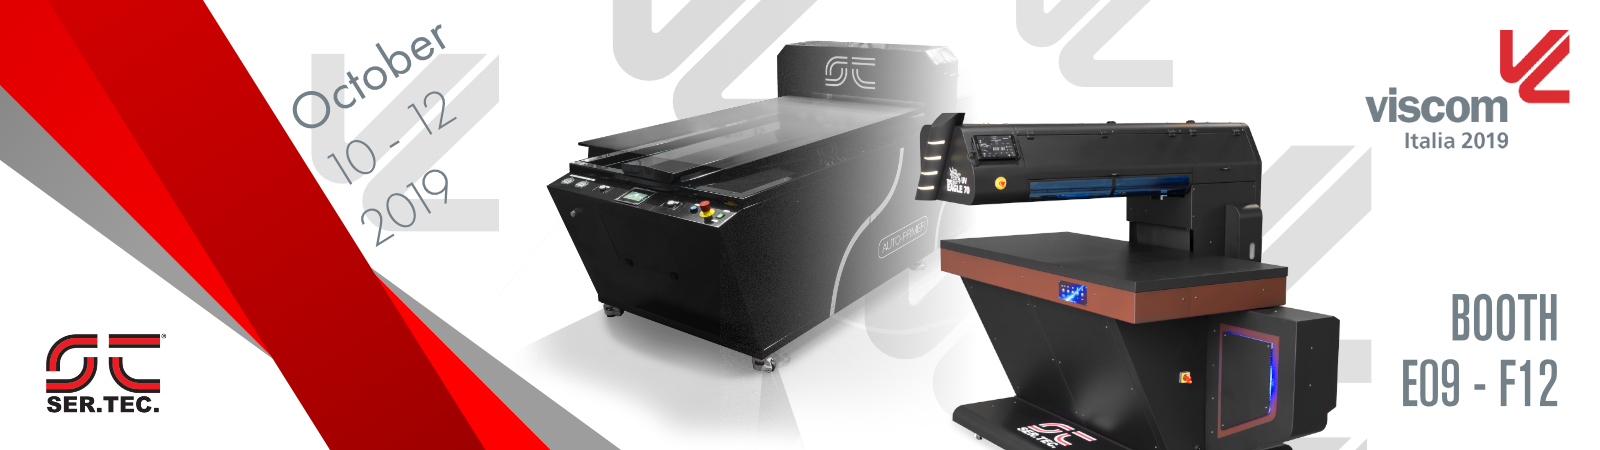 Eagle industrial printers viscom milan